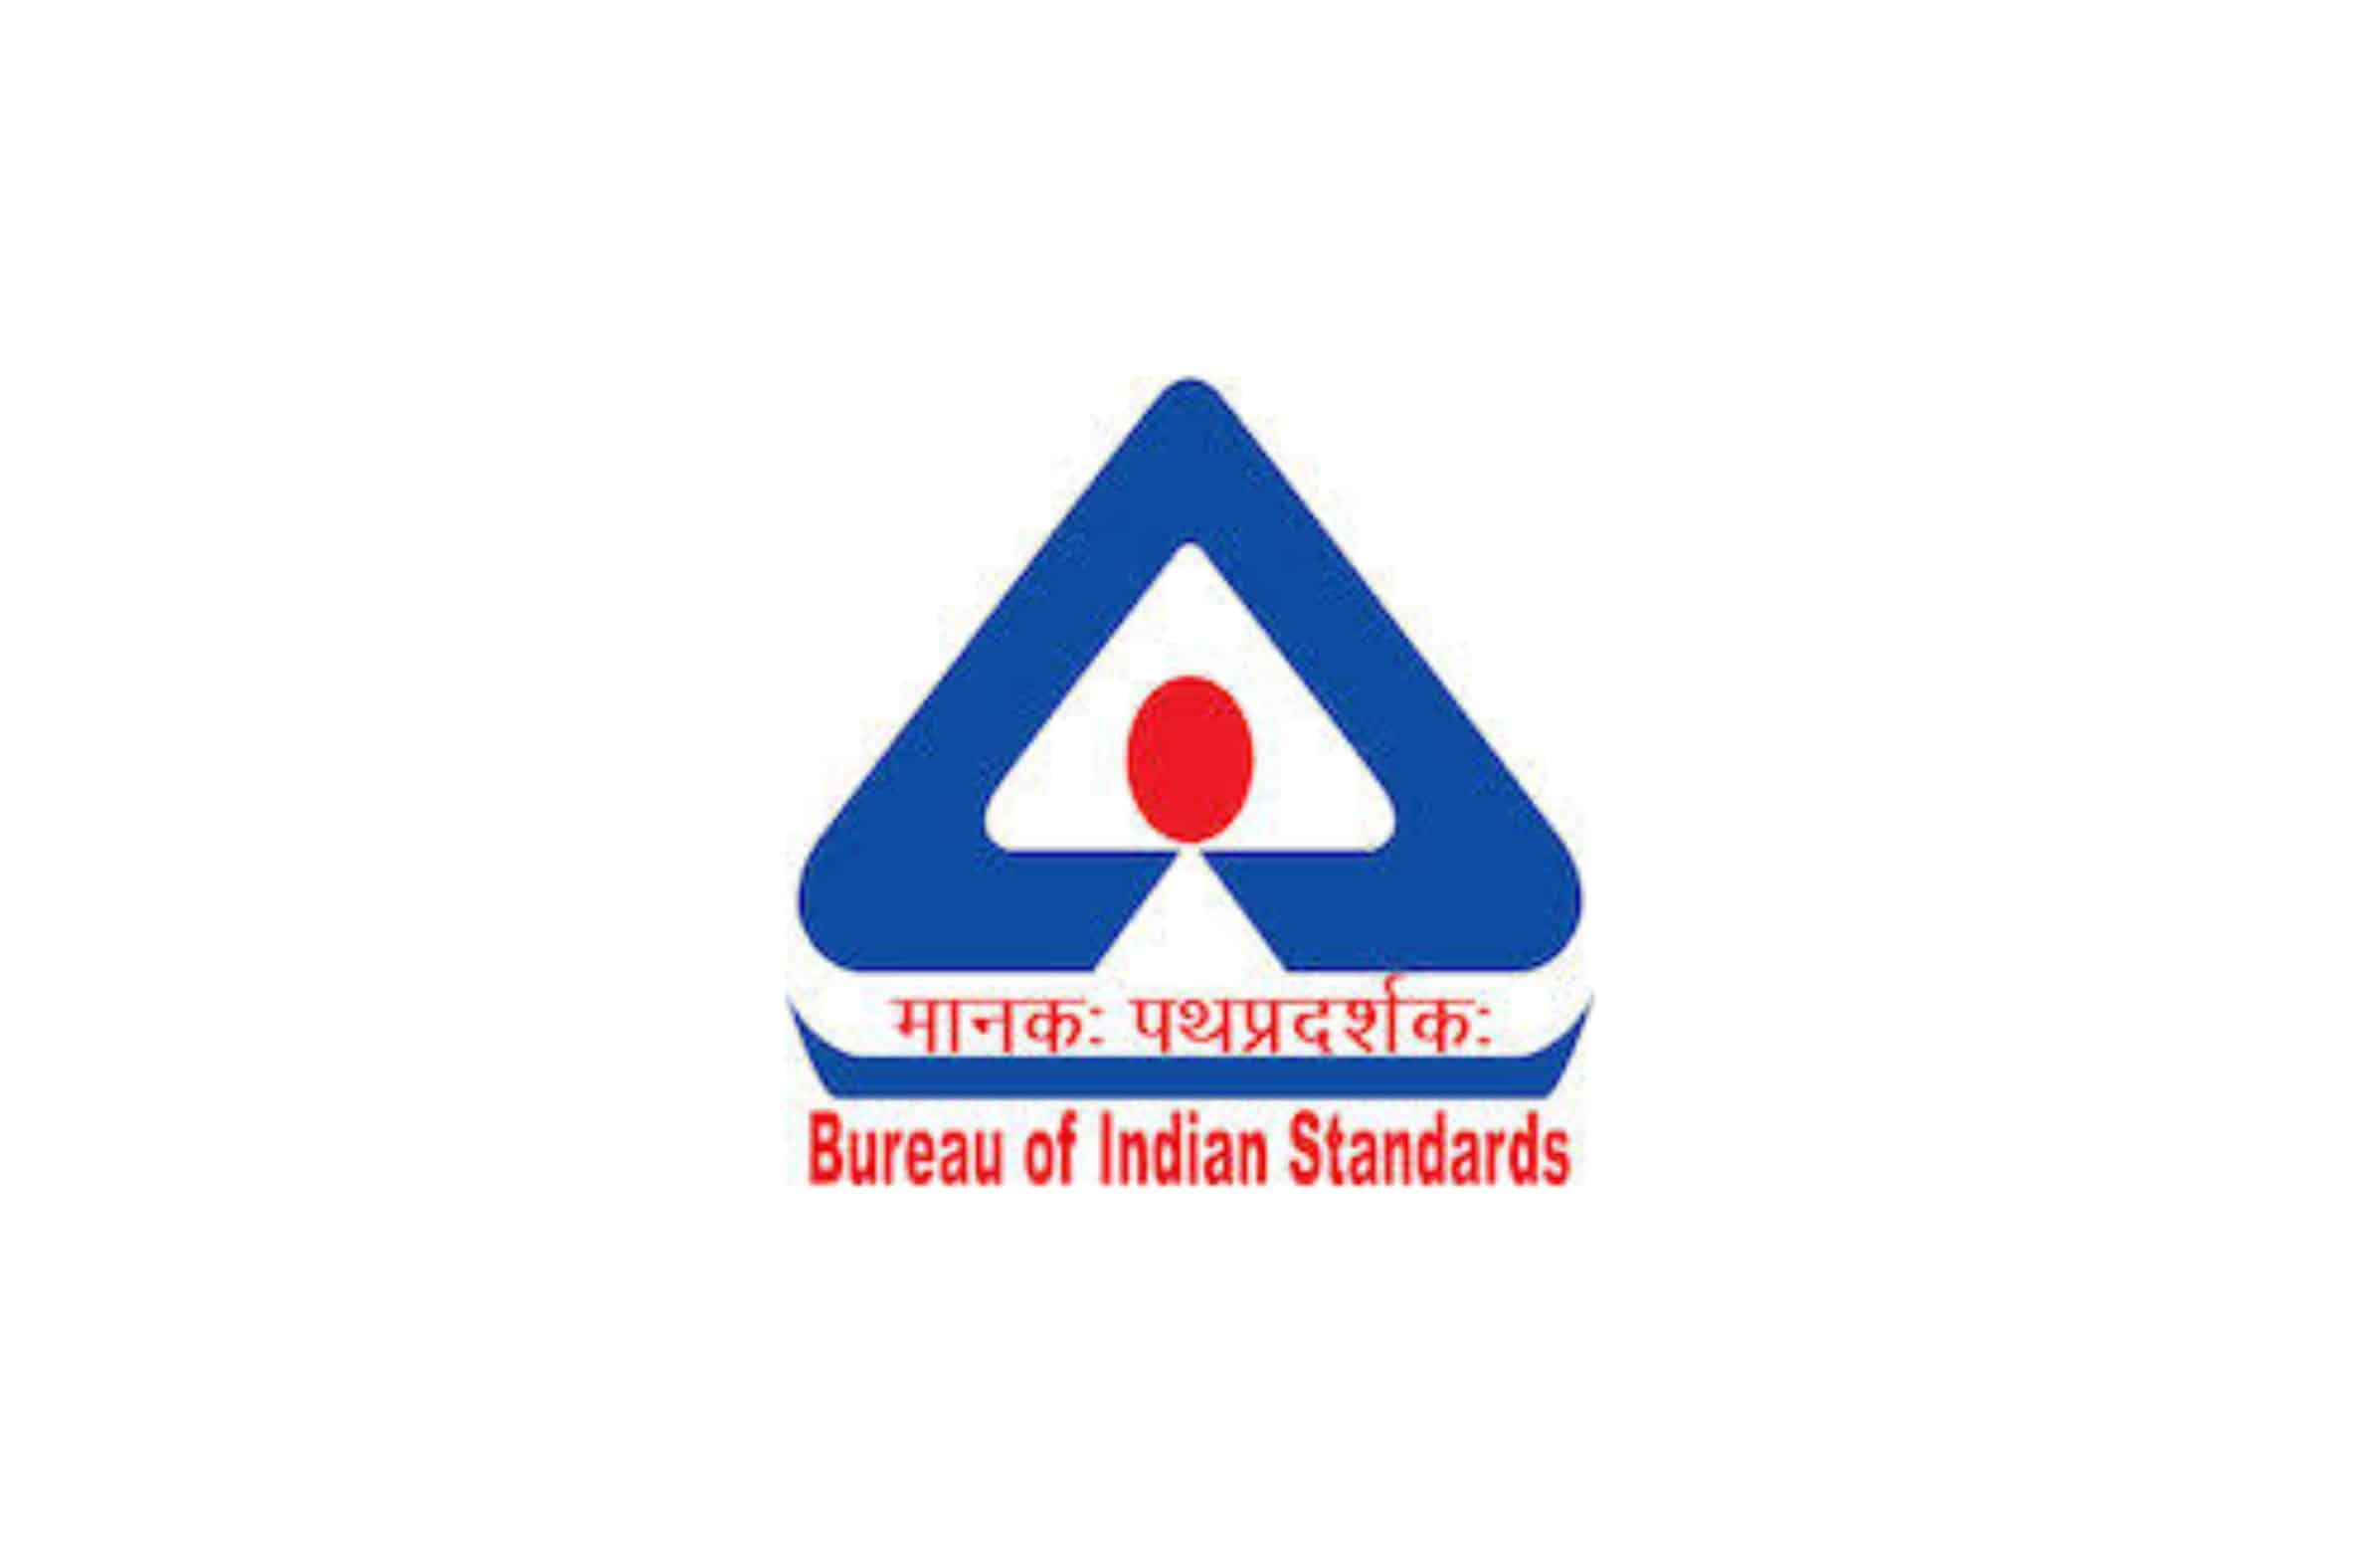 Standard testing fees to be reduced for MSMEs, Start-ups and Women Entrepreneurs